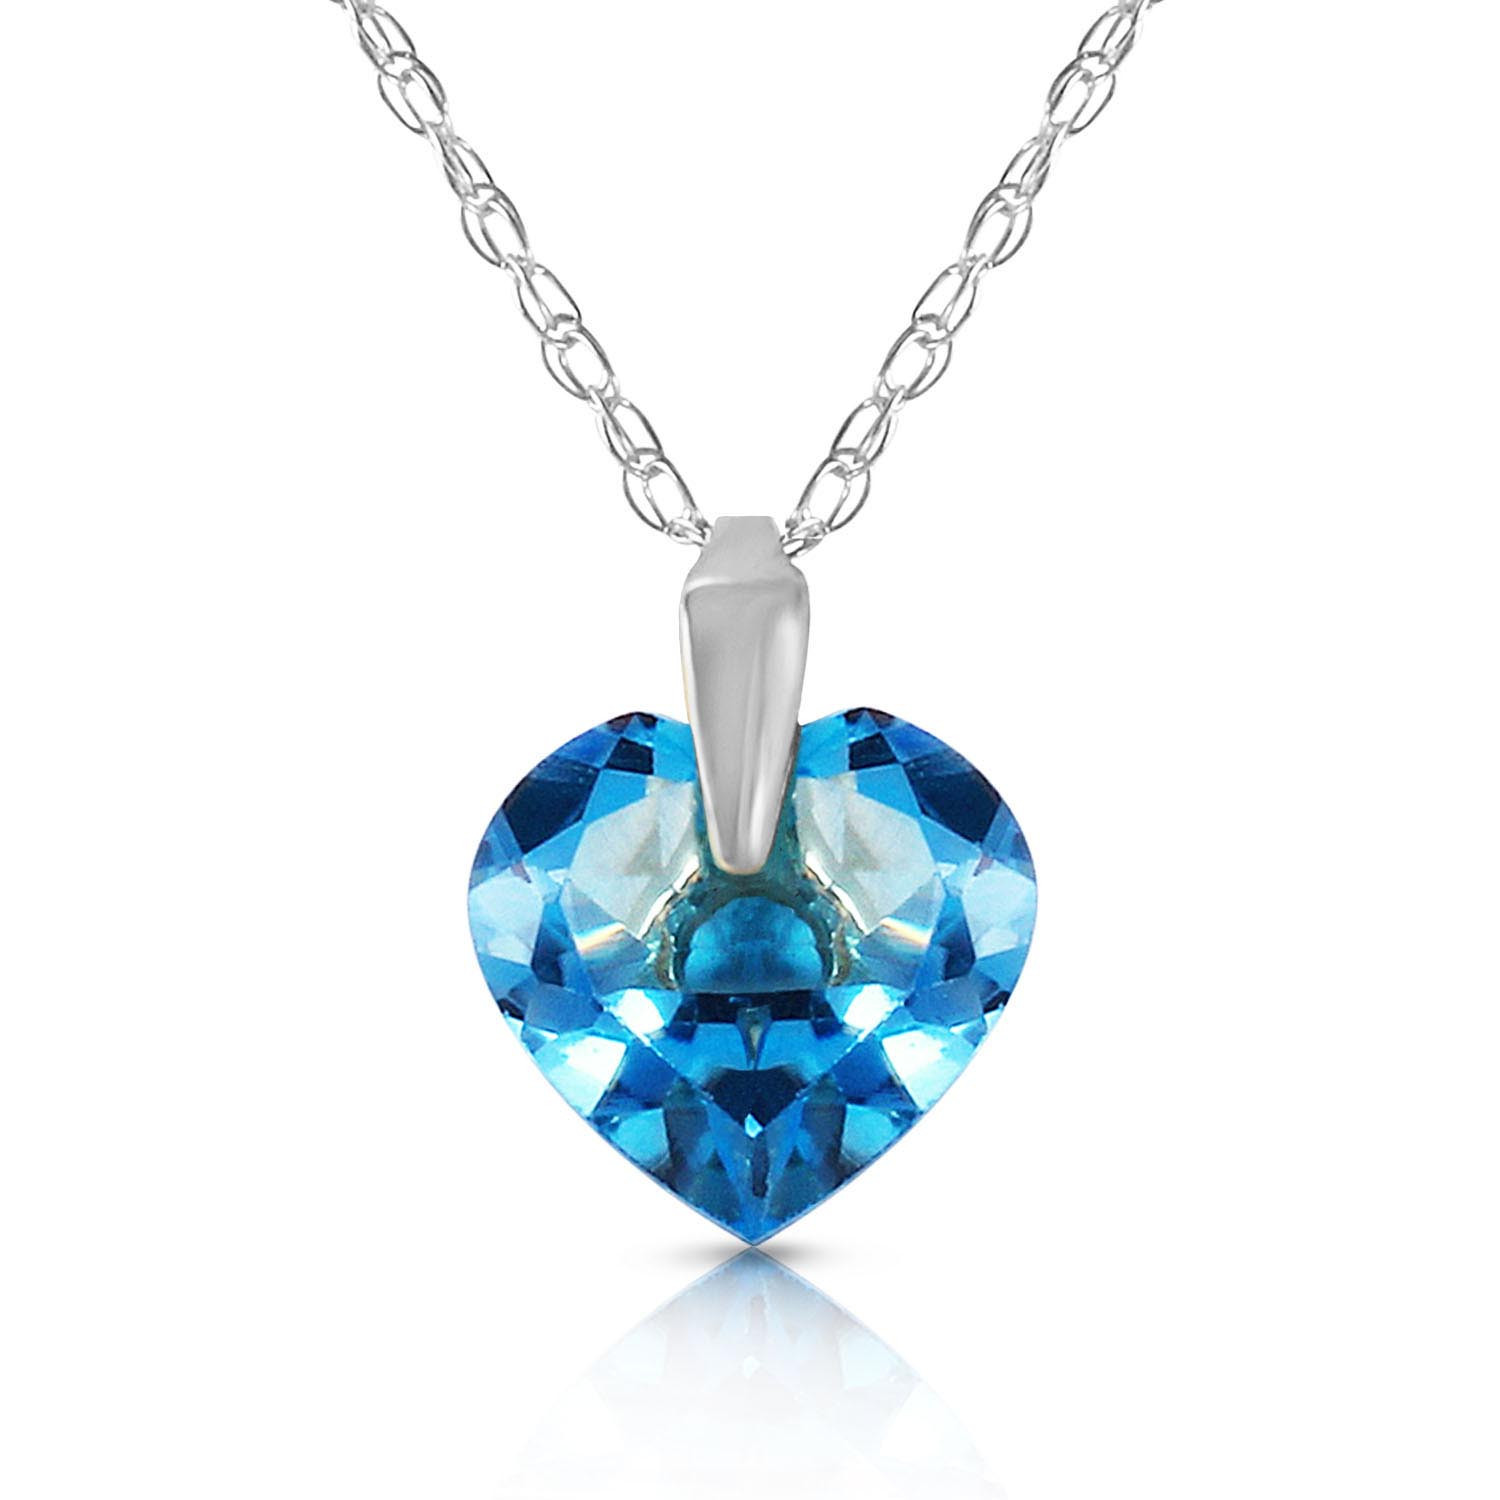 b9316a3550c9ae Blue Topaz Heart Pendant Necklace 1.15 ct in 9ct White Gold - 2357W ...